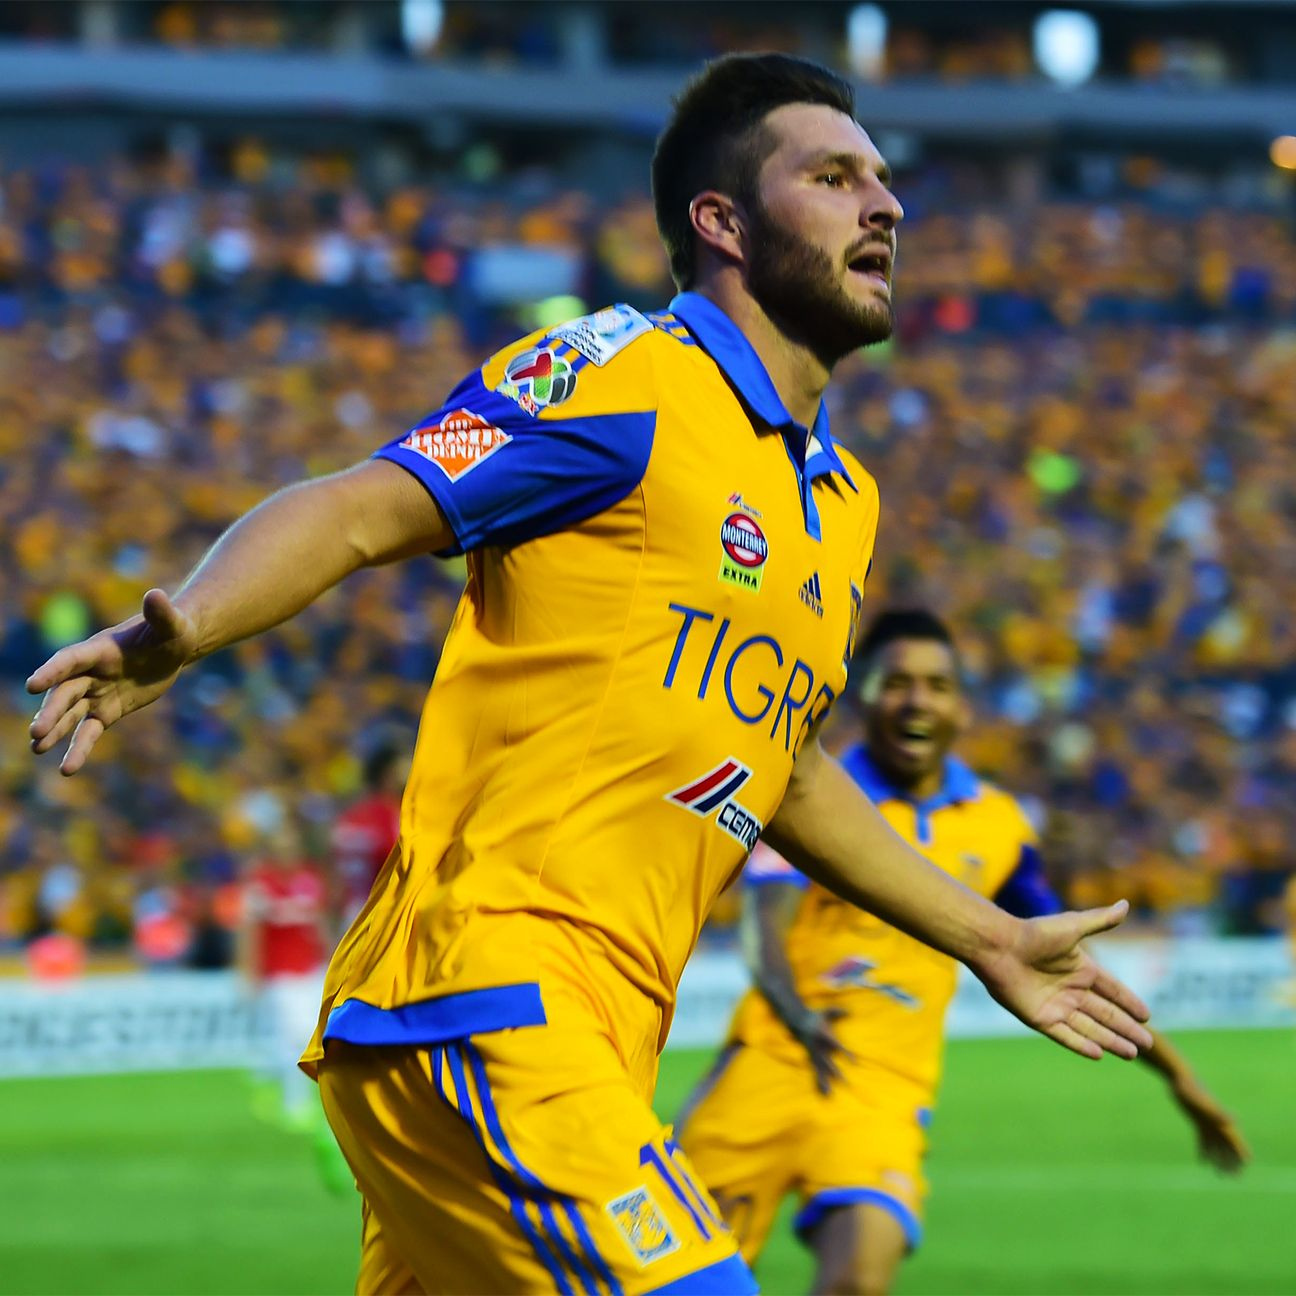 After a stellar first season in Liga MX, forward Andre-Pierre Gignac returns for Tigres who are seeking back-to-back championships.